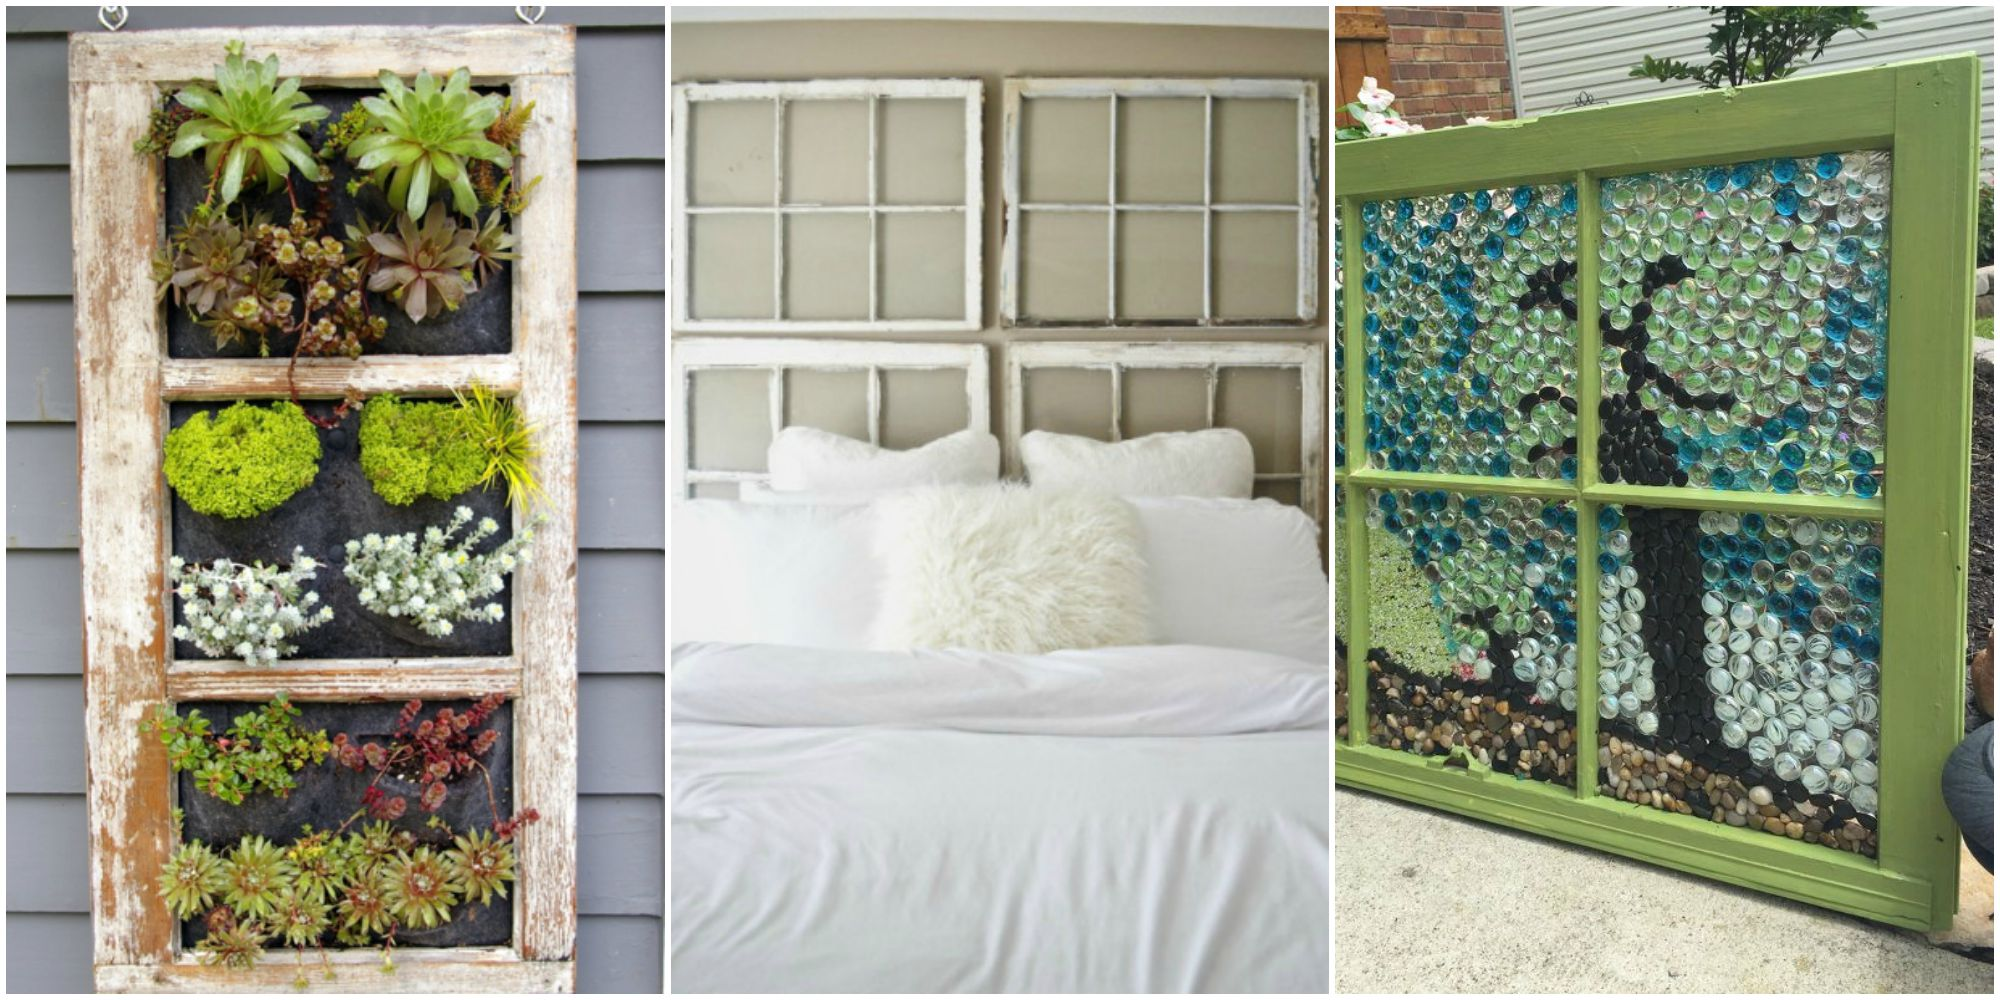 Ways To Use An Old Window Frame Diy Repurposing Projects